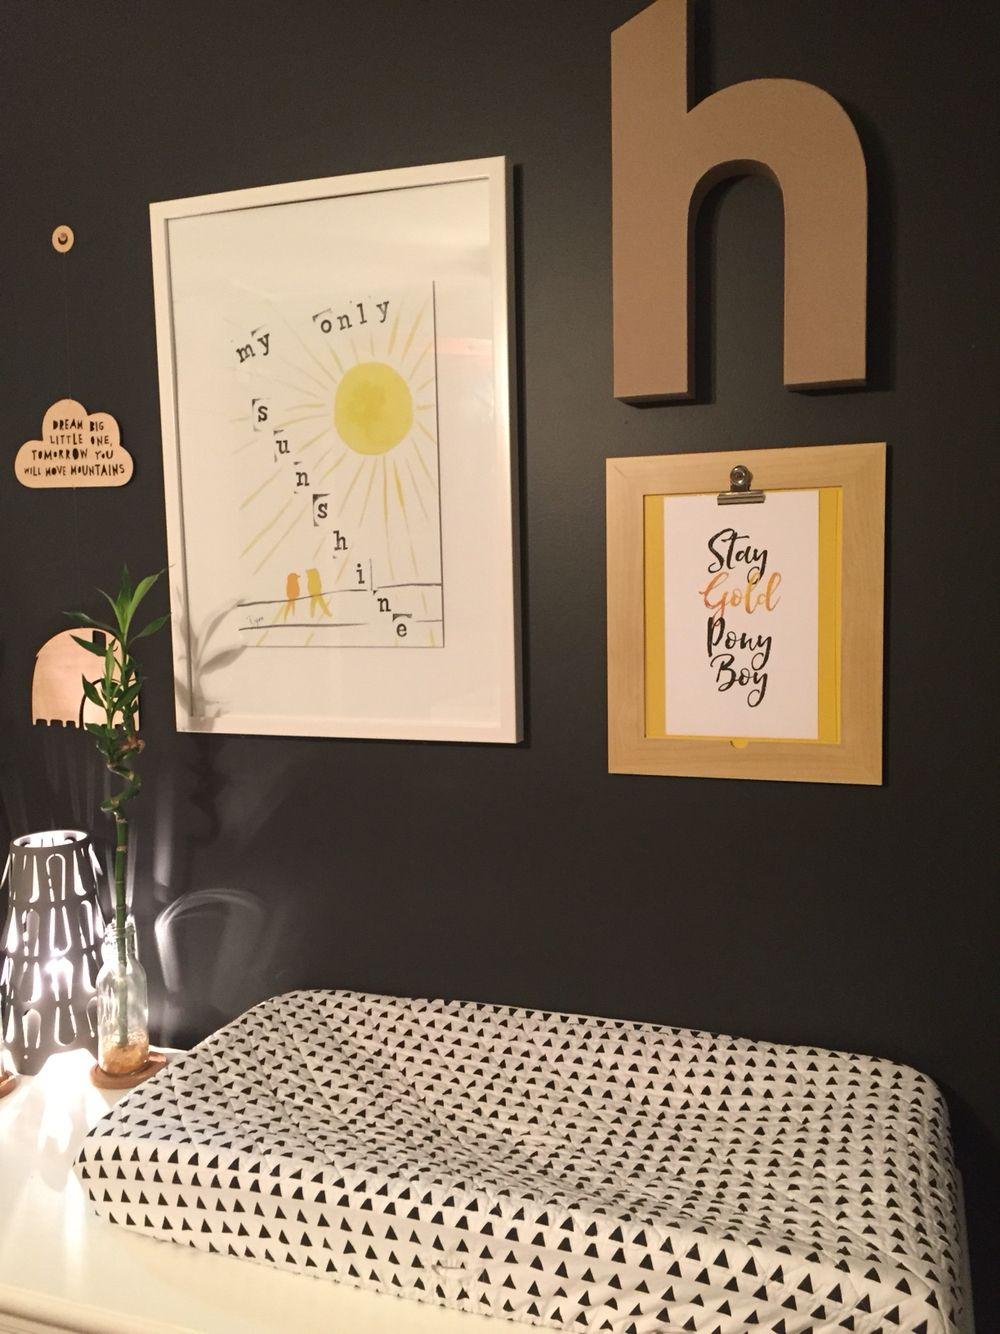 """Sneak peak into more real gold foil prints! """"Stay Gold Ponyboy"""". What nursery doesn't need a nod to staying pure and truthful to youthful innocence.  www.paperheartcompany.com  #goldfoil  #nursery #nurserydecor #wallart #staygold #staygoldponyboy #blackandwhite #monochromatic"""